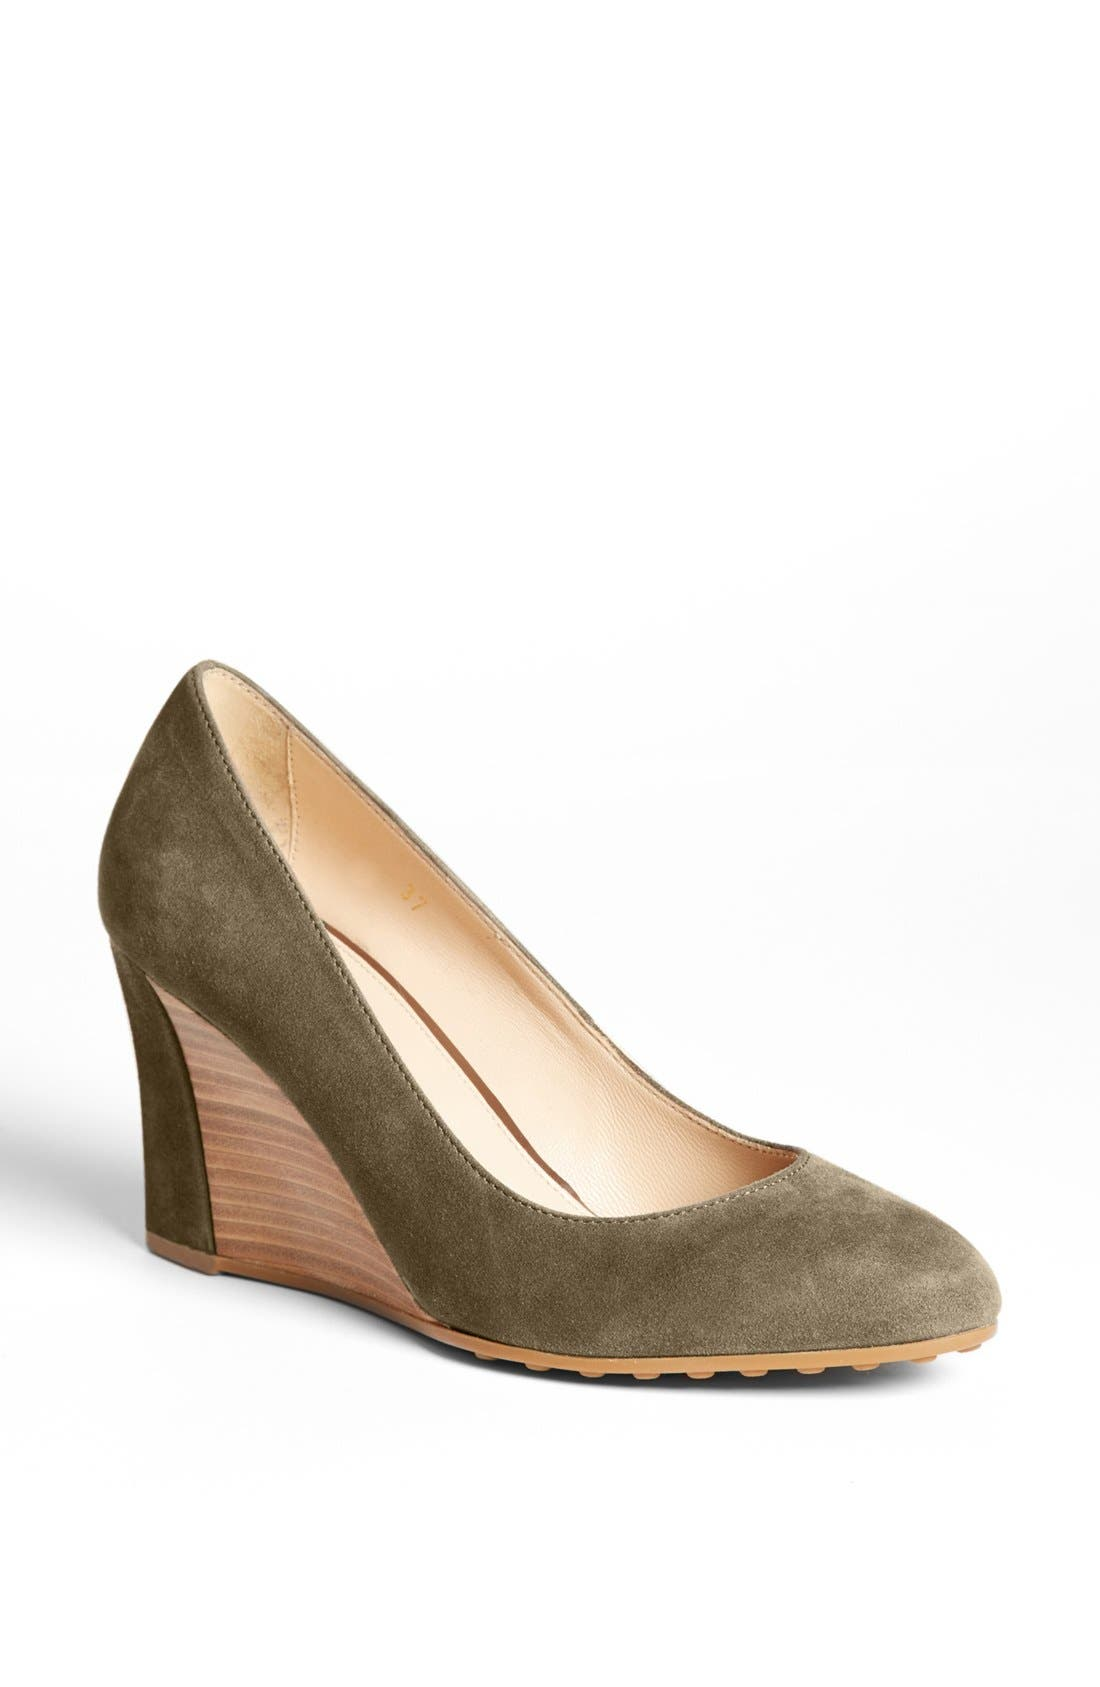 Alternate Image 1 Selected - Tod's Suede Wedge Pump